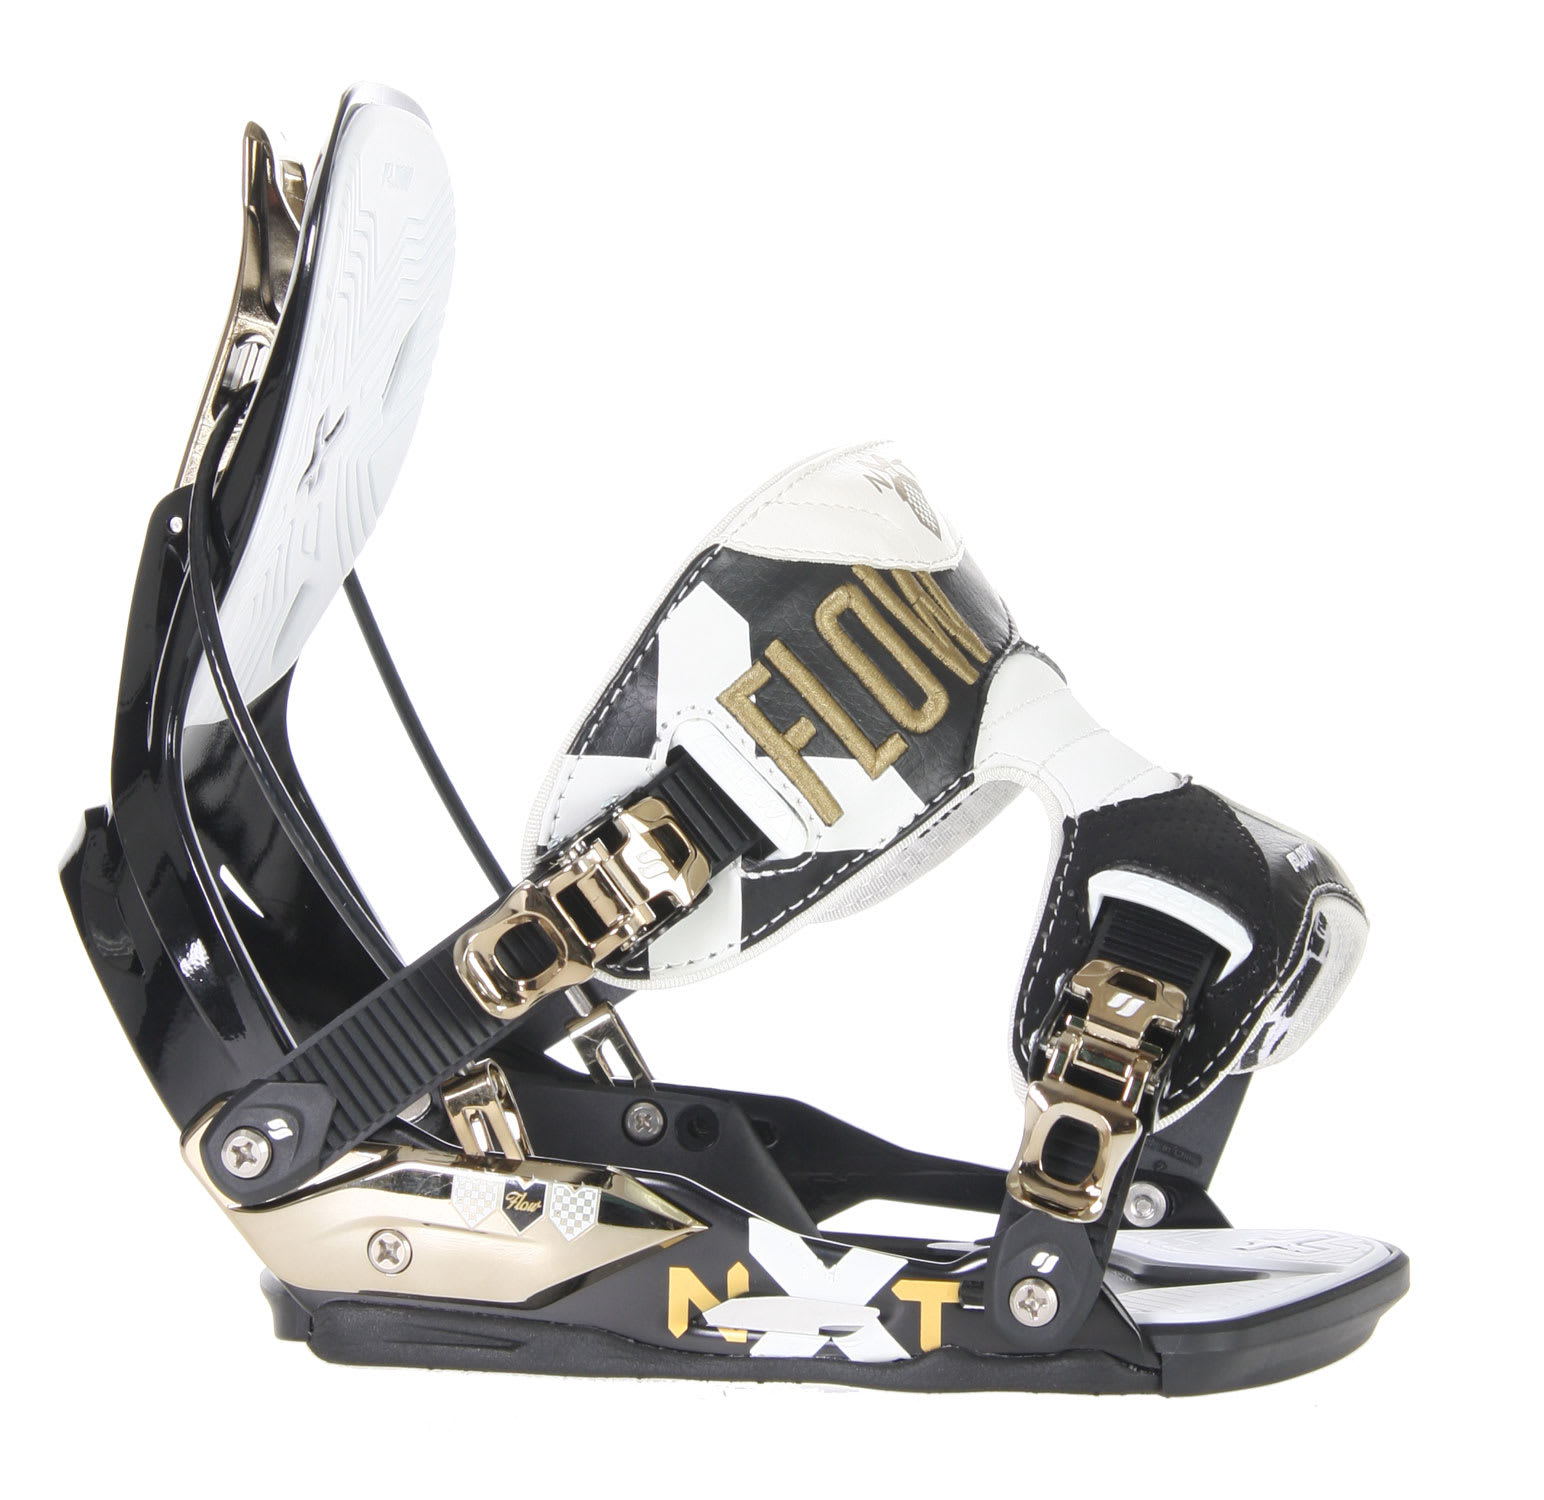 On Sale Flow NXT AT Snowboard Bindings Up To 70% Off